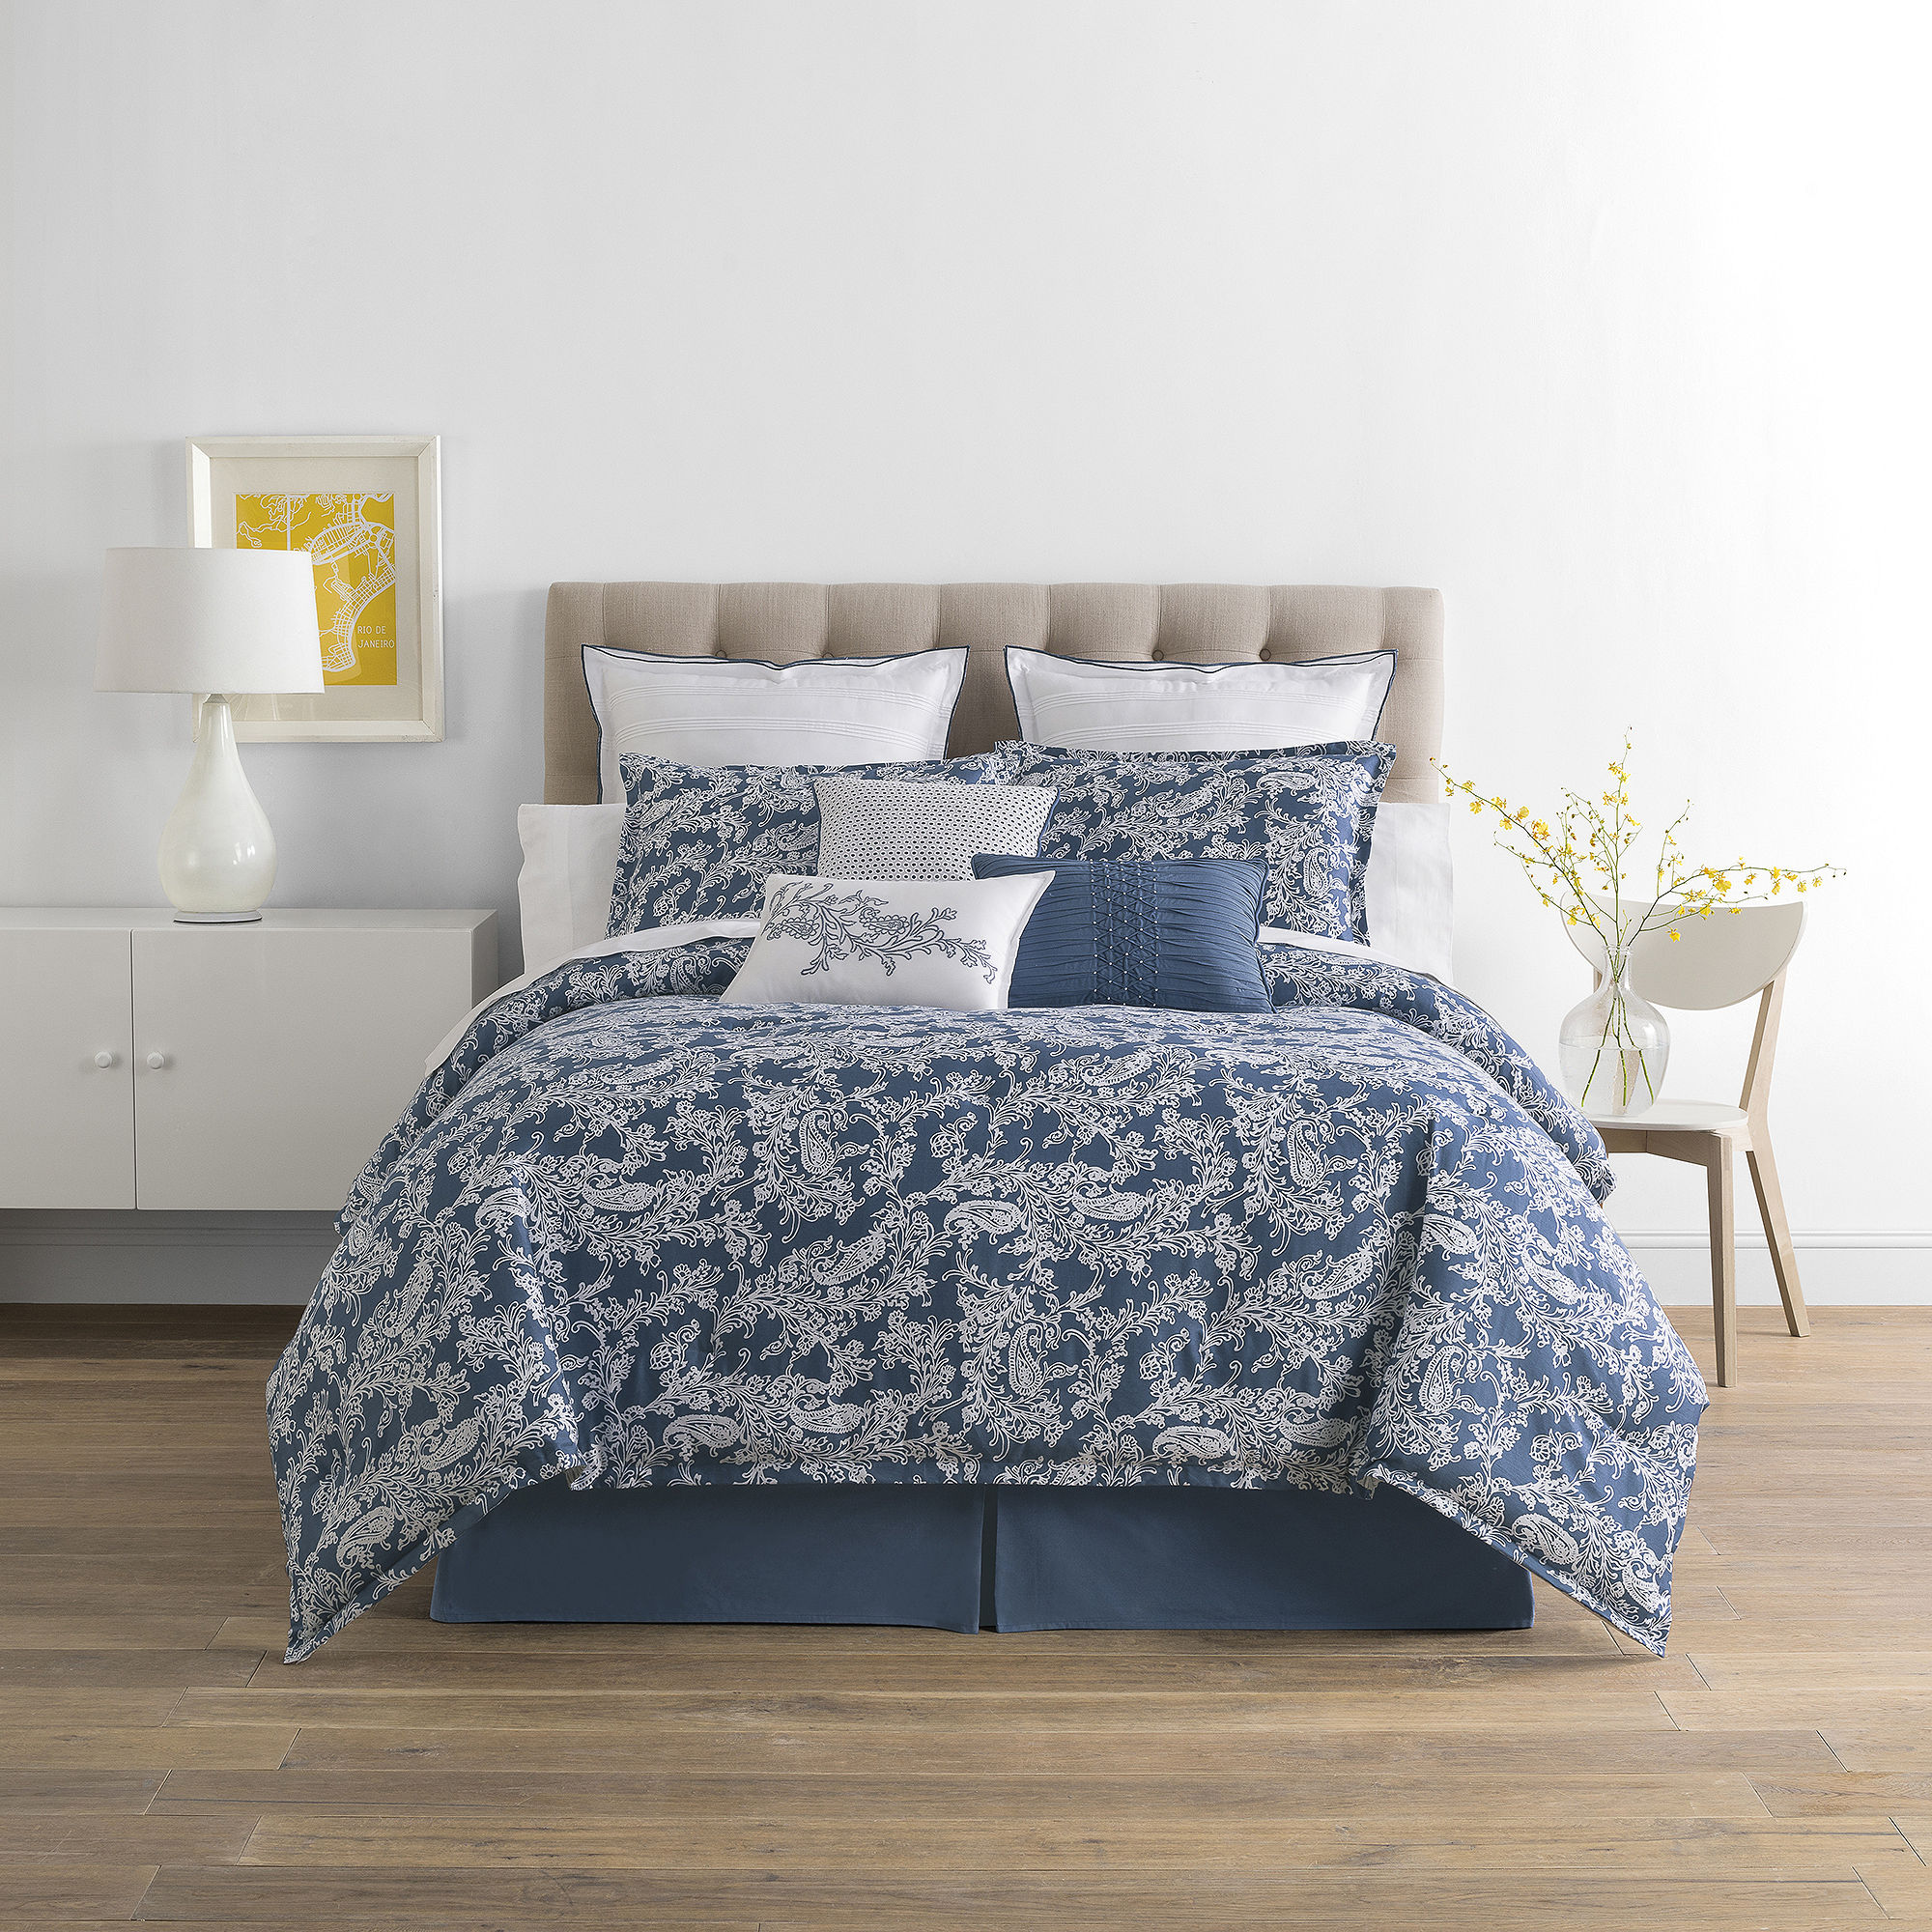 Jcpenneys Home Store: CHEAP JCPenney Home Floral Trellis Comforter Set LIMITED